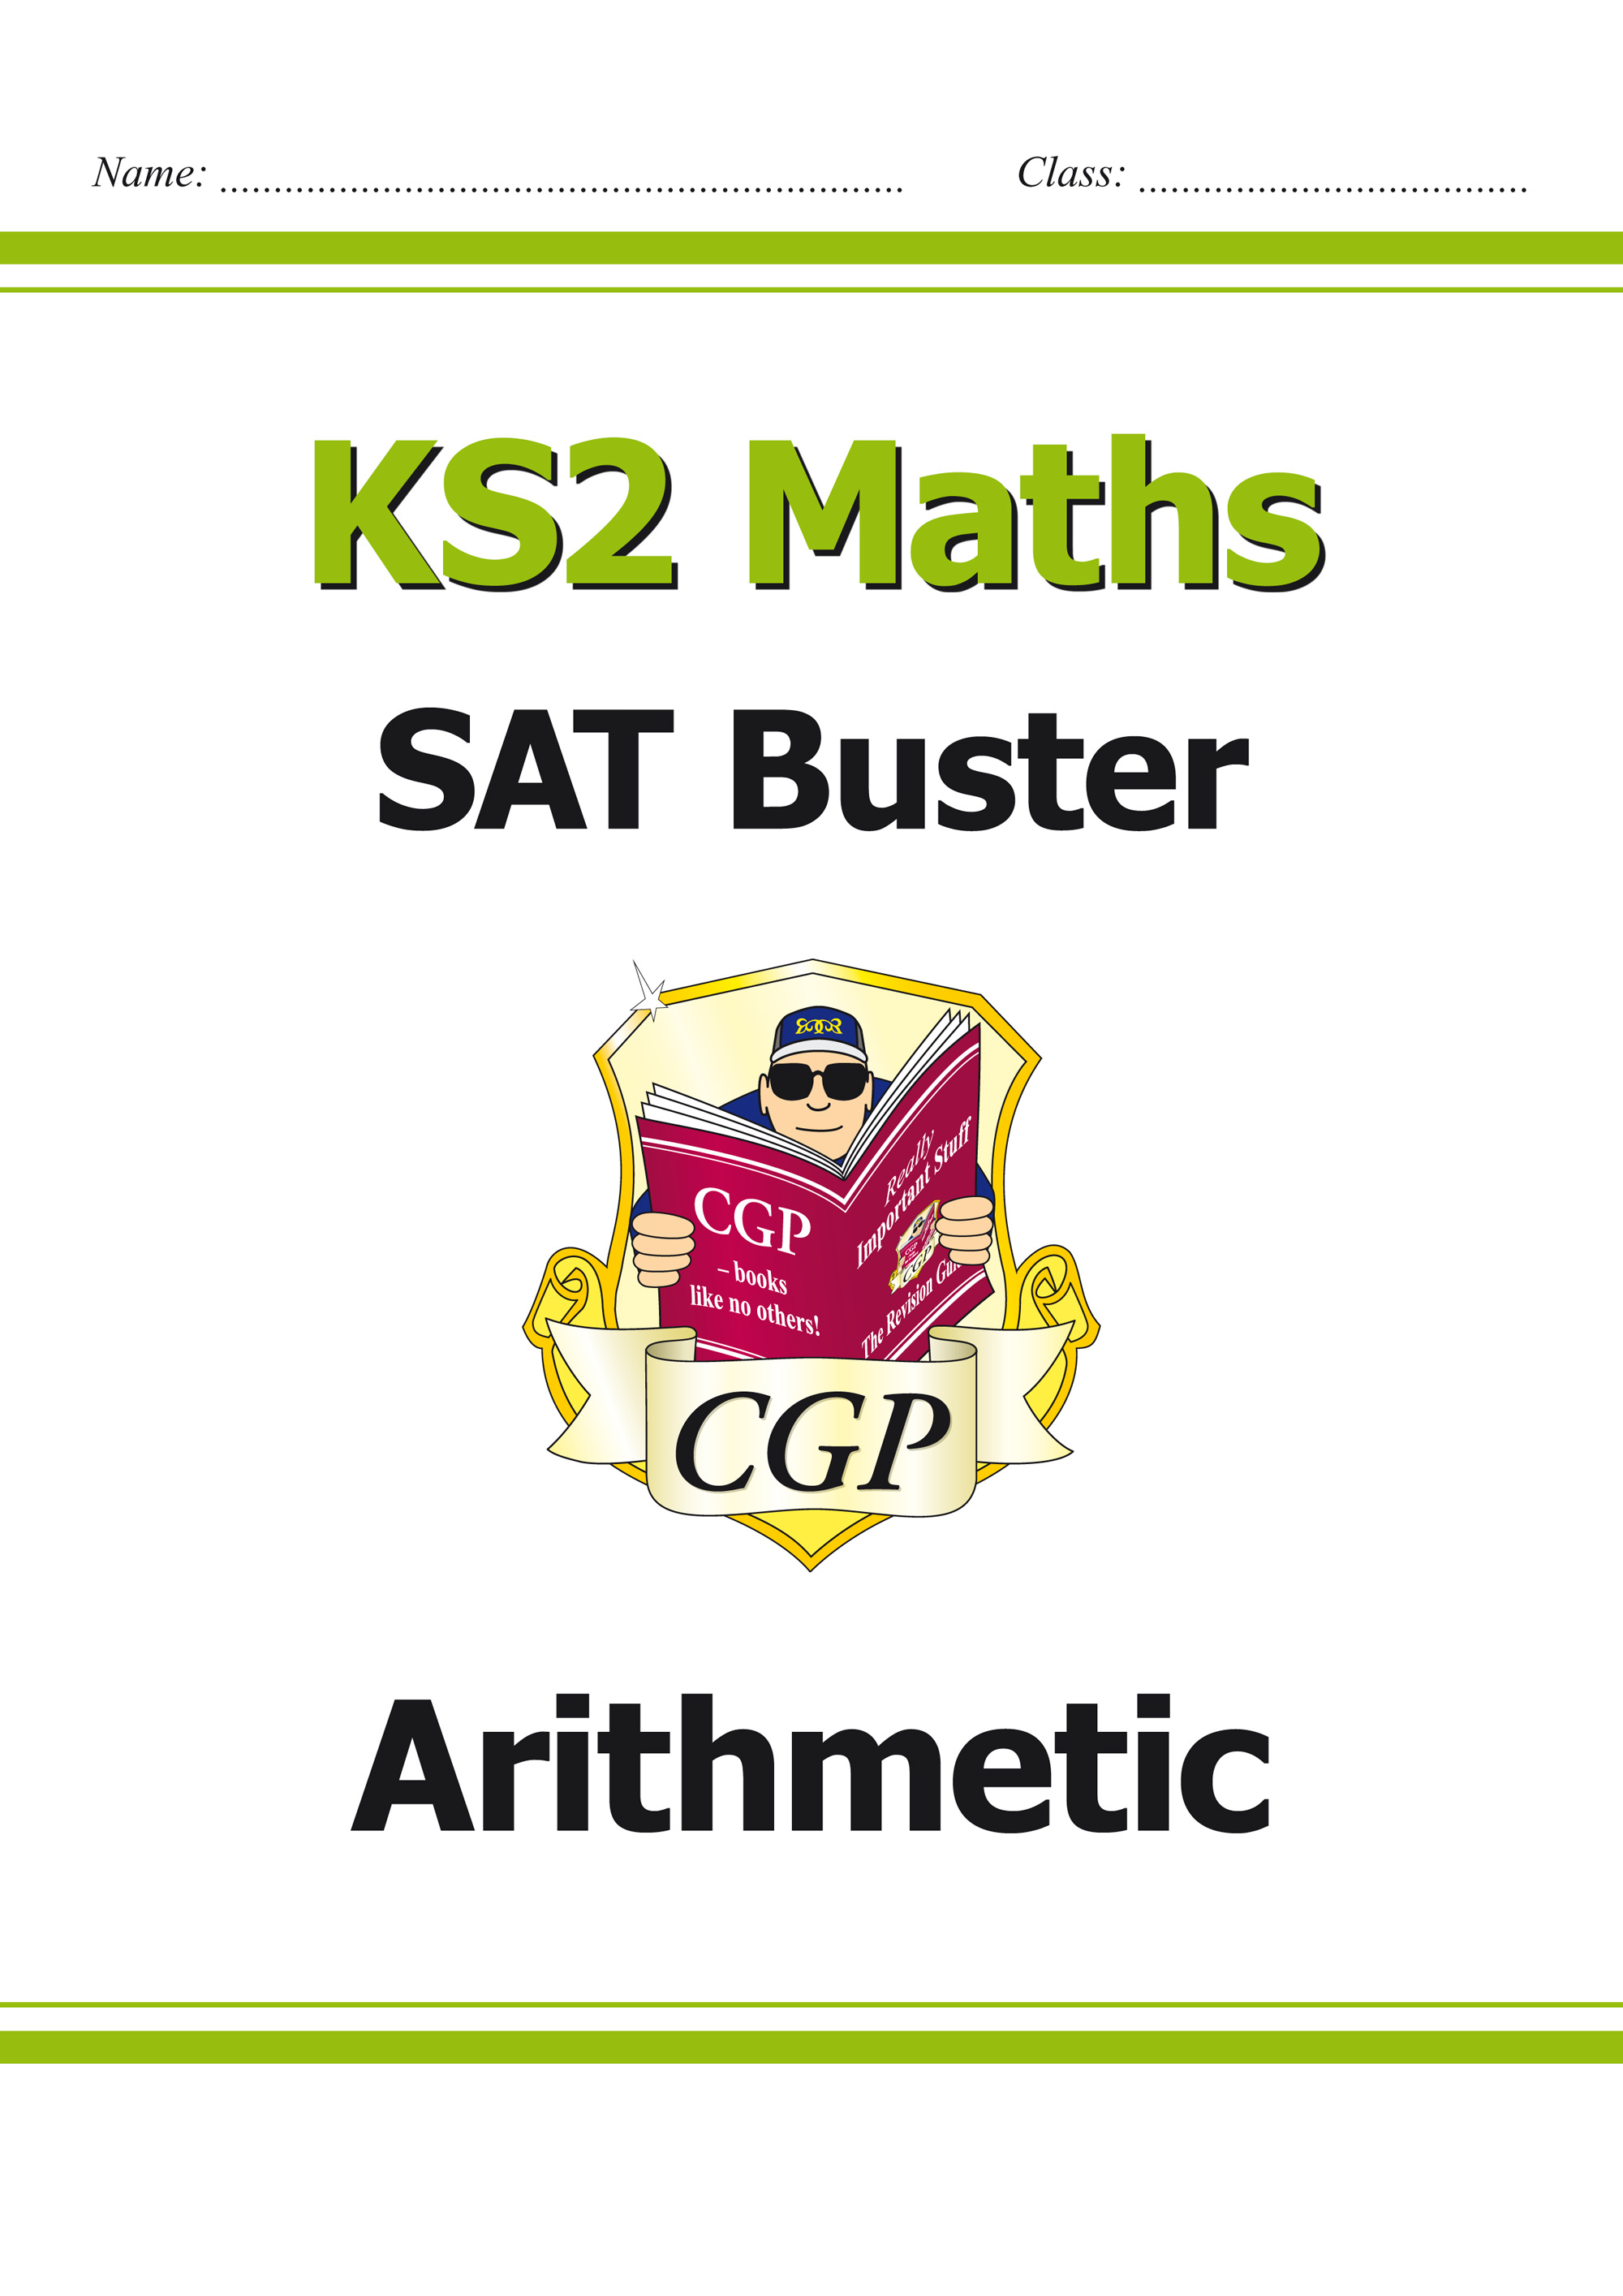 M6ARI23 - KS2 Maths SAT Buster: Arithmetic Book 1 (for tests in 2019)